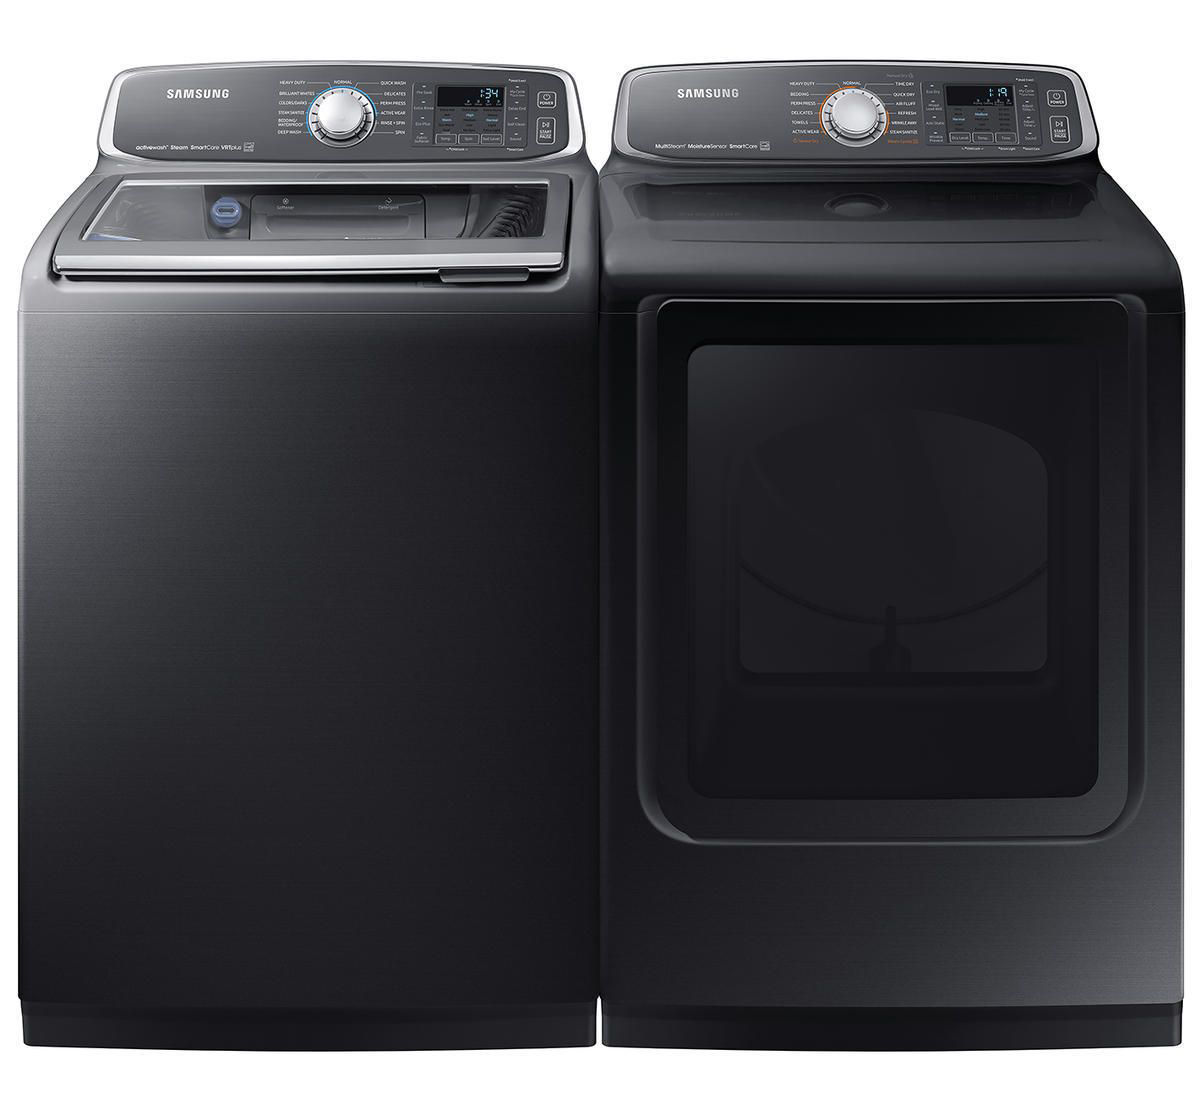 Samsung Top Load Washer Dryer Pair Badcock Home Furniture More